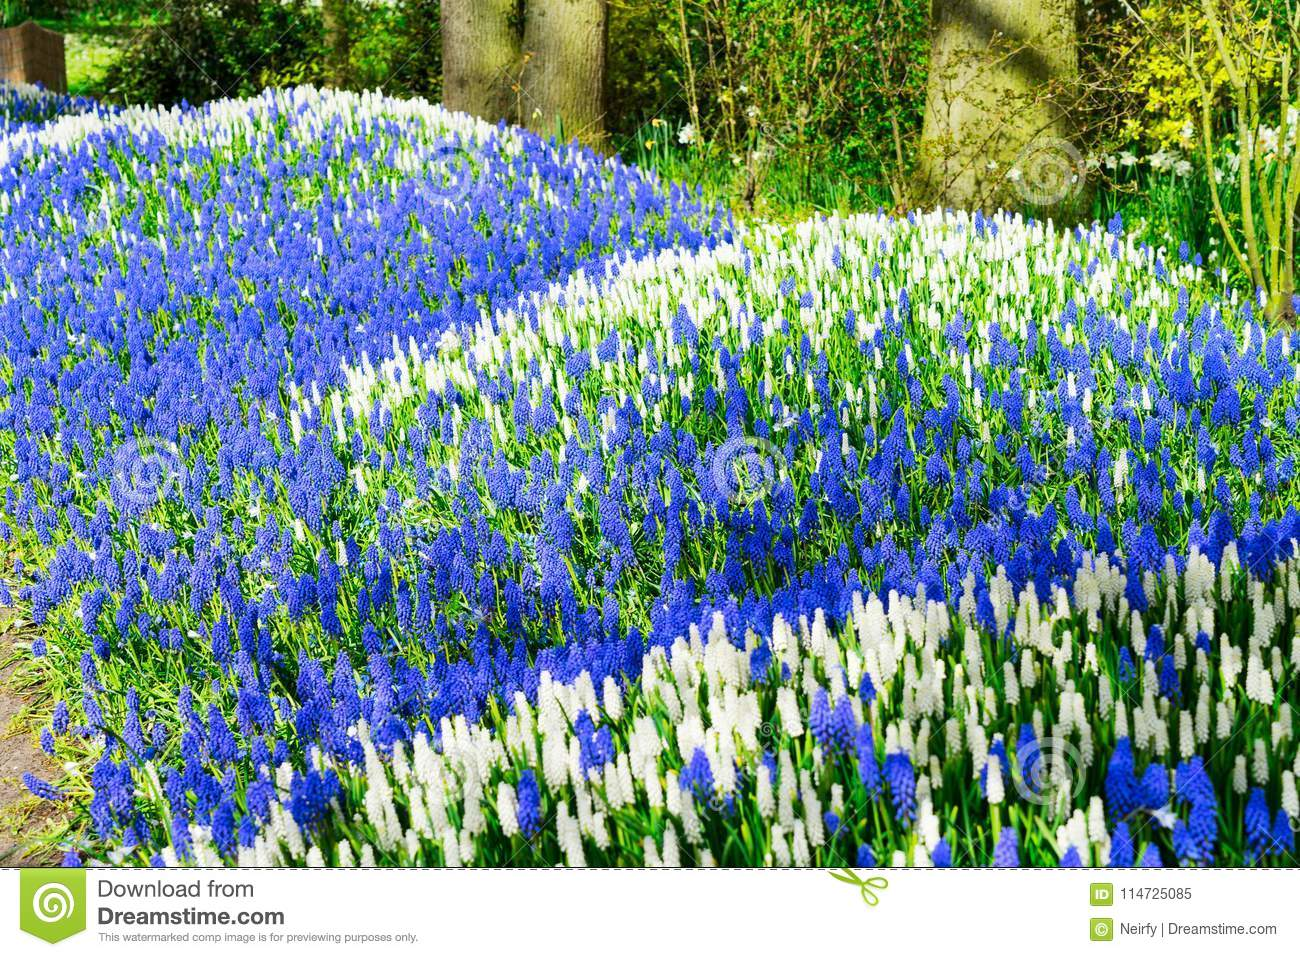 Bluebell flowers river stock image image of holland 114725085 download bluebell flowers river stock image image of holland 114725085 mightylinksfo